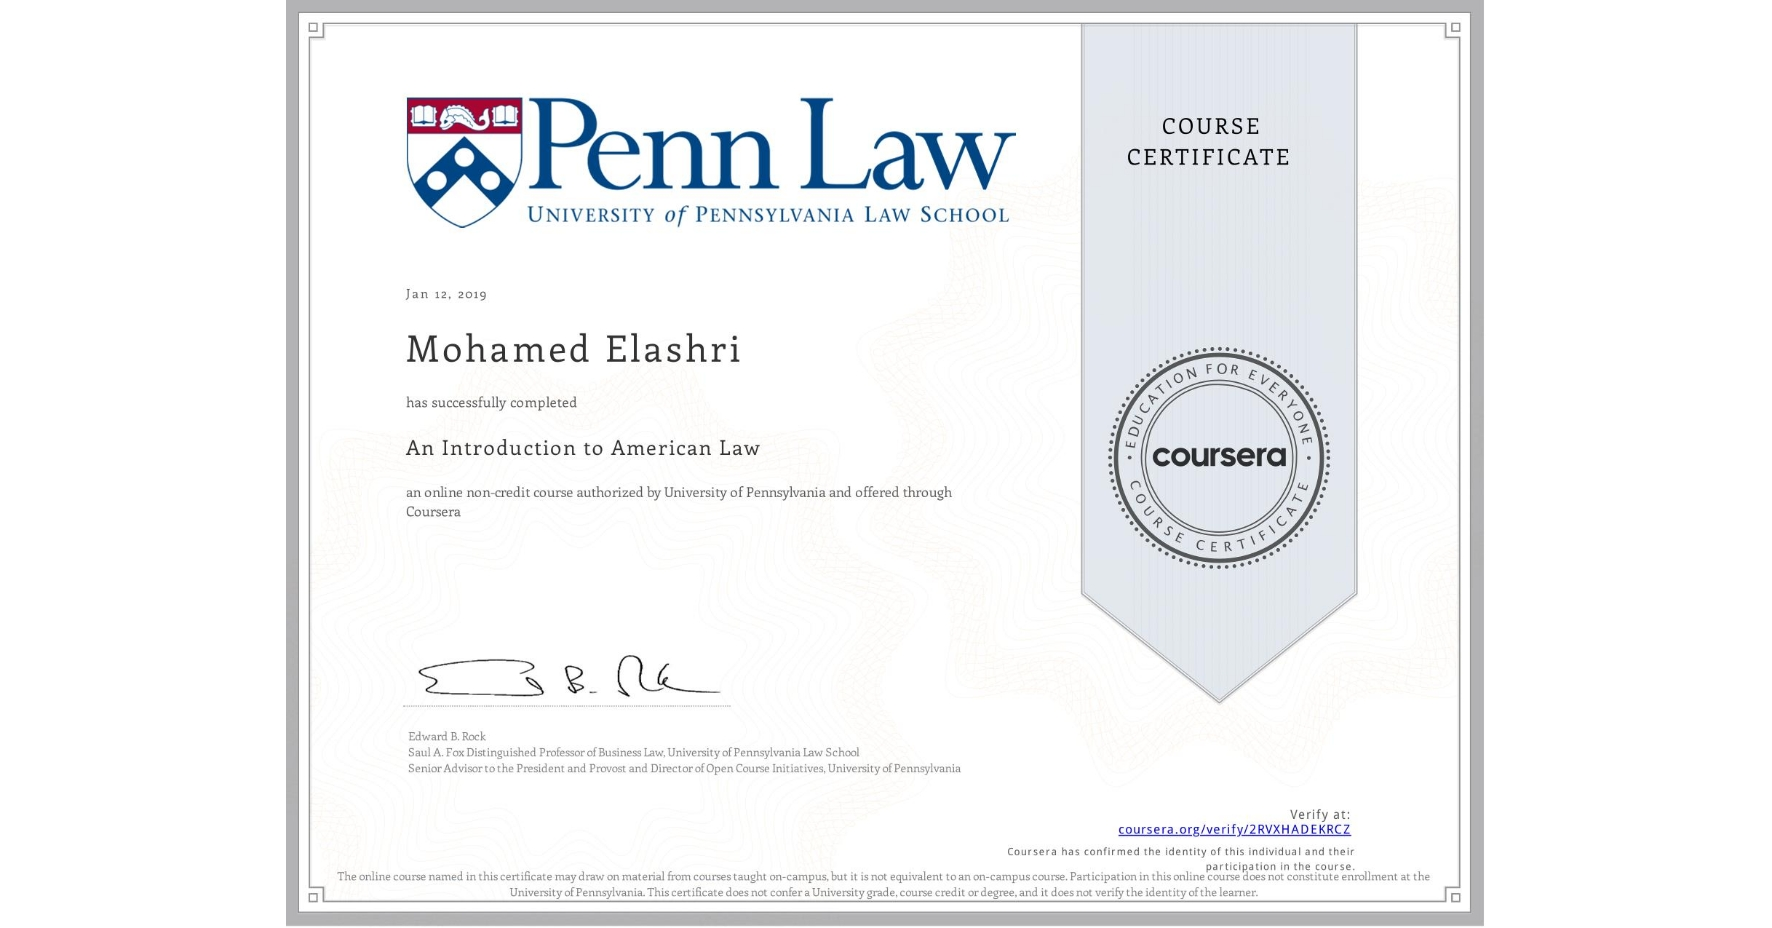 View certificate for Mohamed Elashri, An Introduction to American Law, an online non-credit course authorized by University of Pennsylvania and offered through Coursera